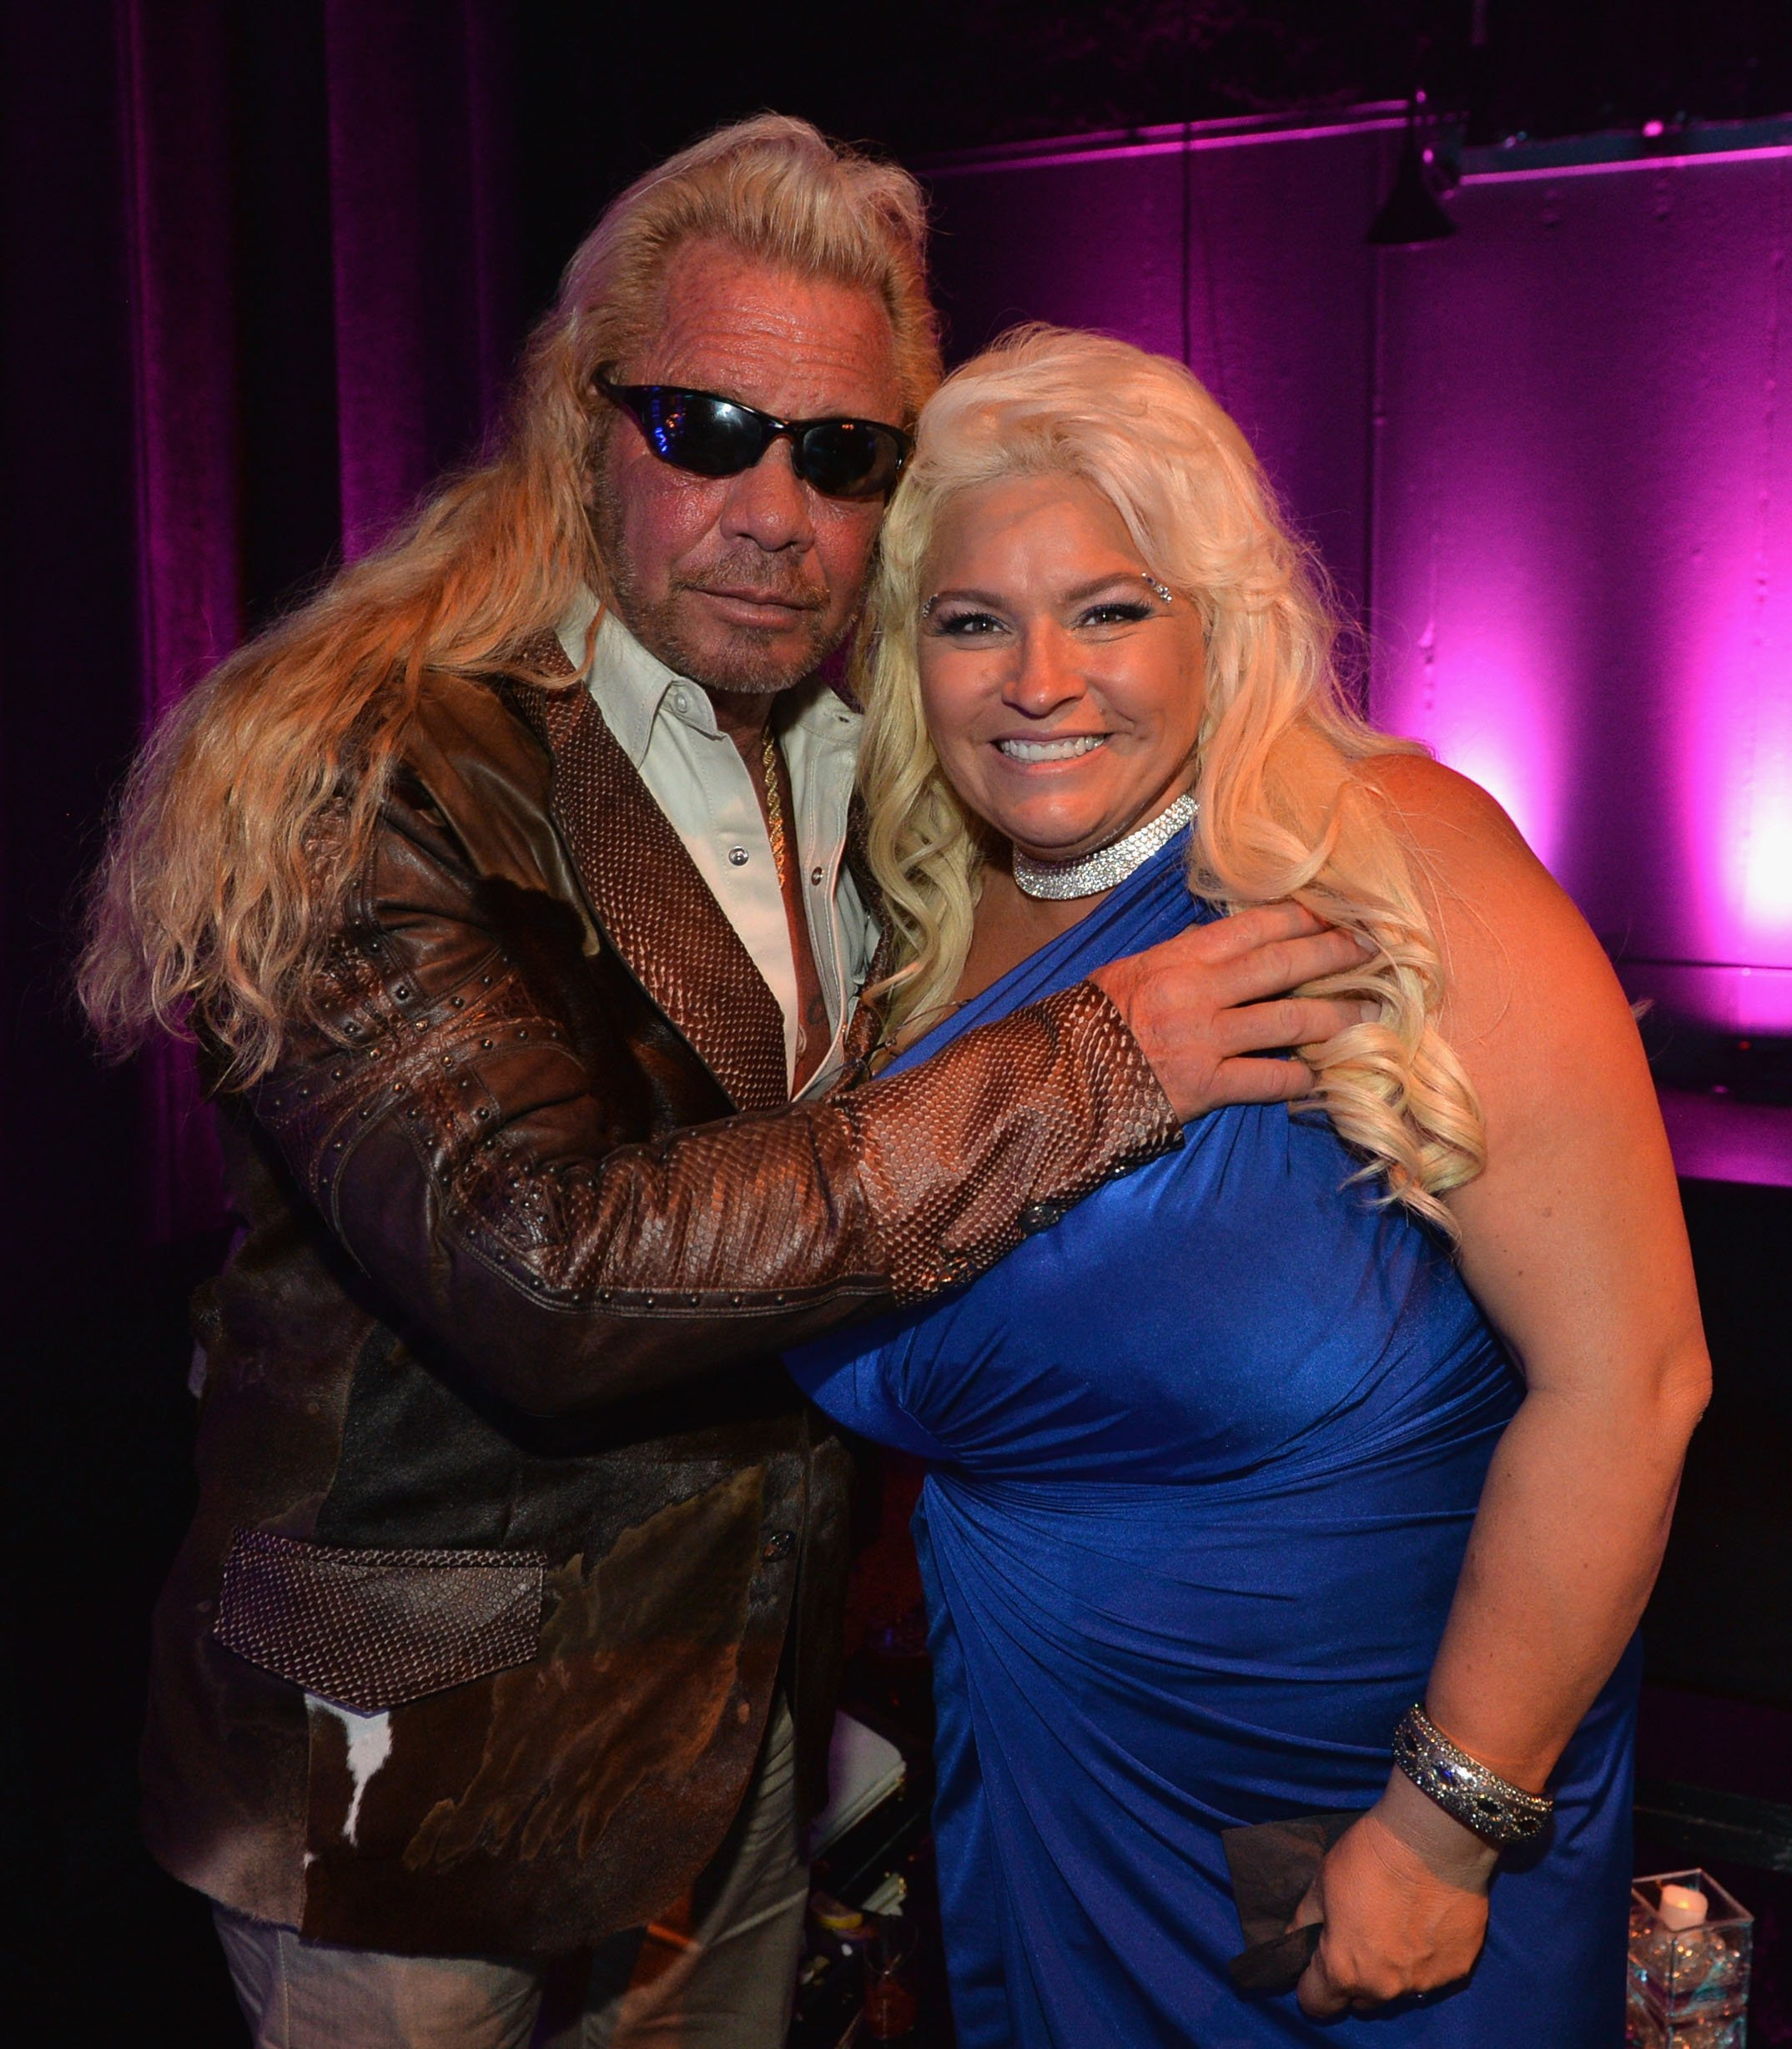 Duane Dog Lee Chapman and Beth Chapman attend the CMT Music Awards on June 5, 2013, in Nashville, Tennessee. | Source: Getty Images.